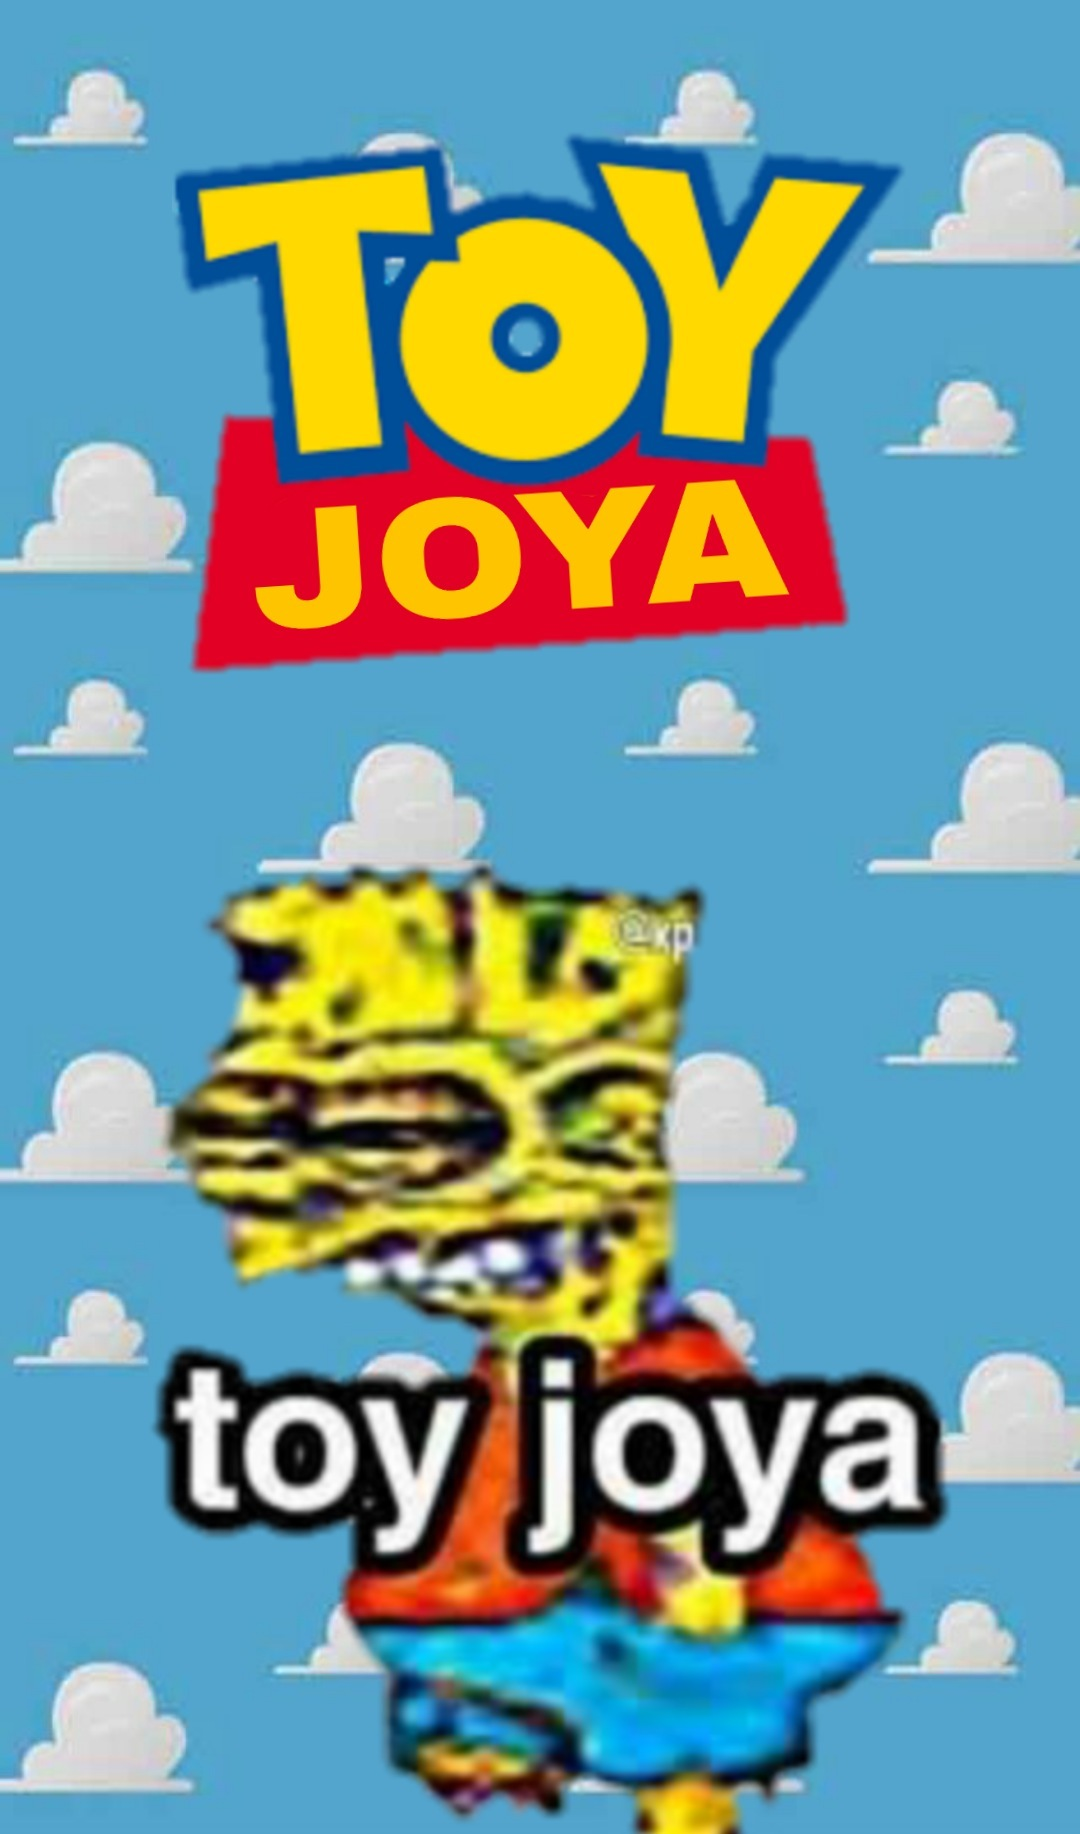 Toy joya - meme